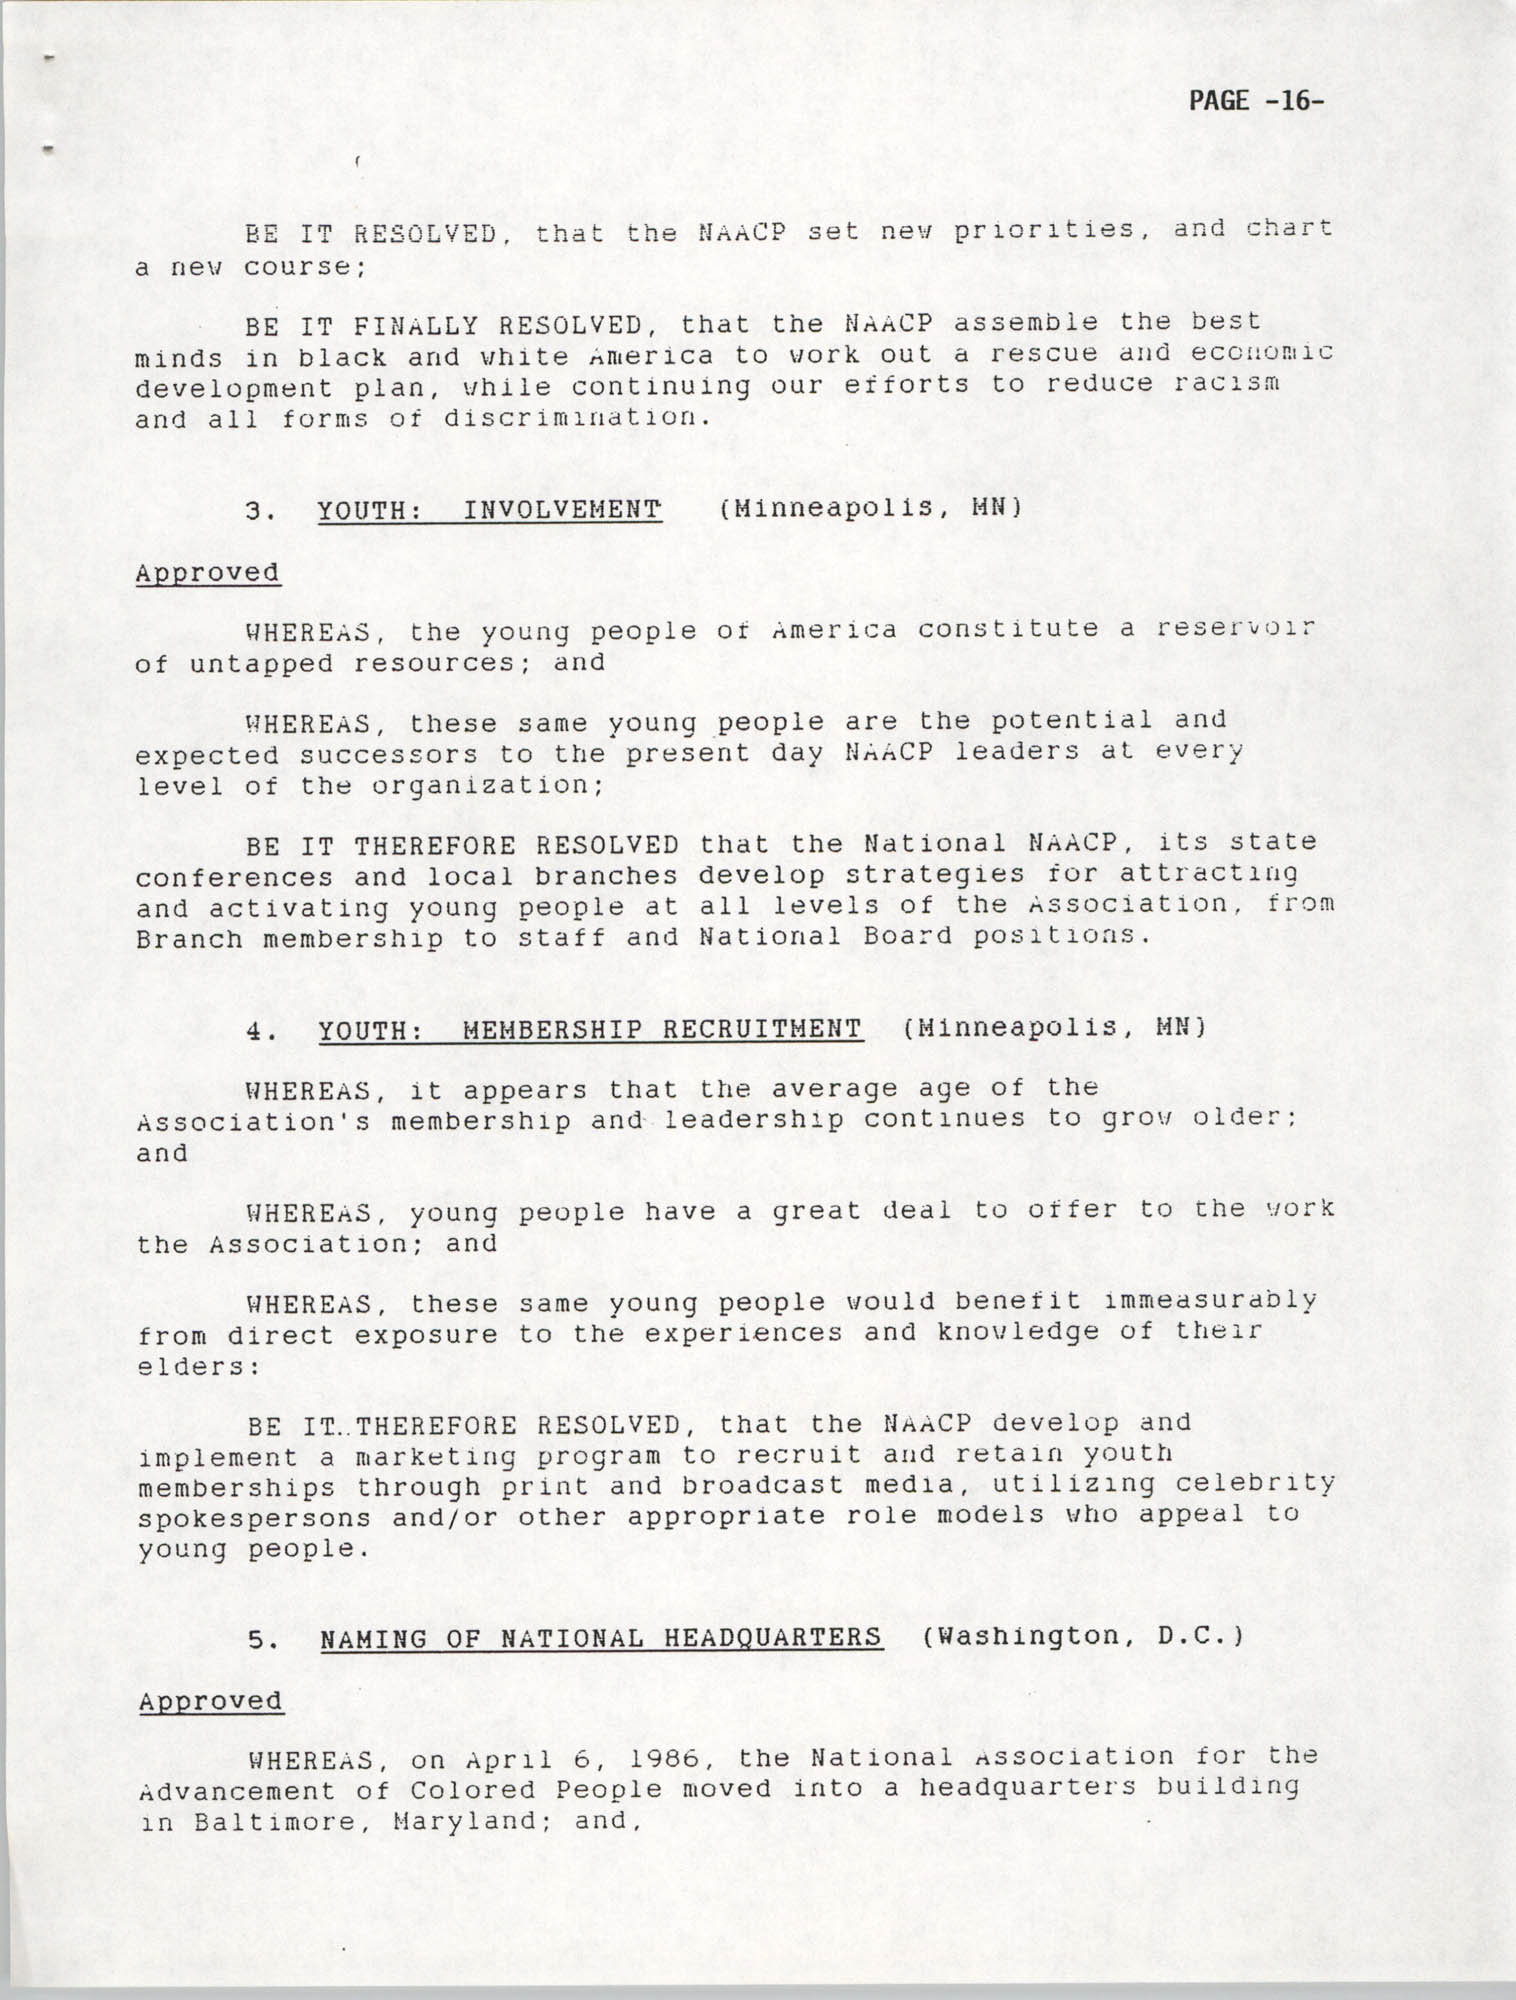 Resolutions Submitted Under Article X, Section 2 of the Constitution of the NAACP, 1992, Page 16